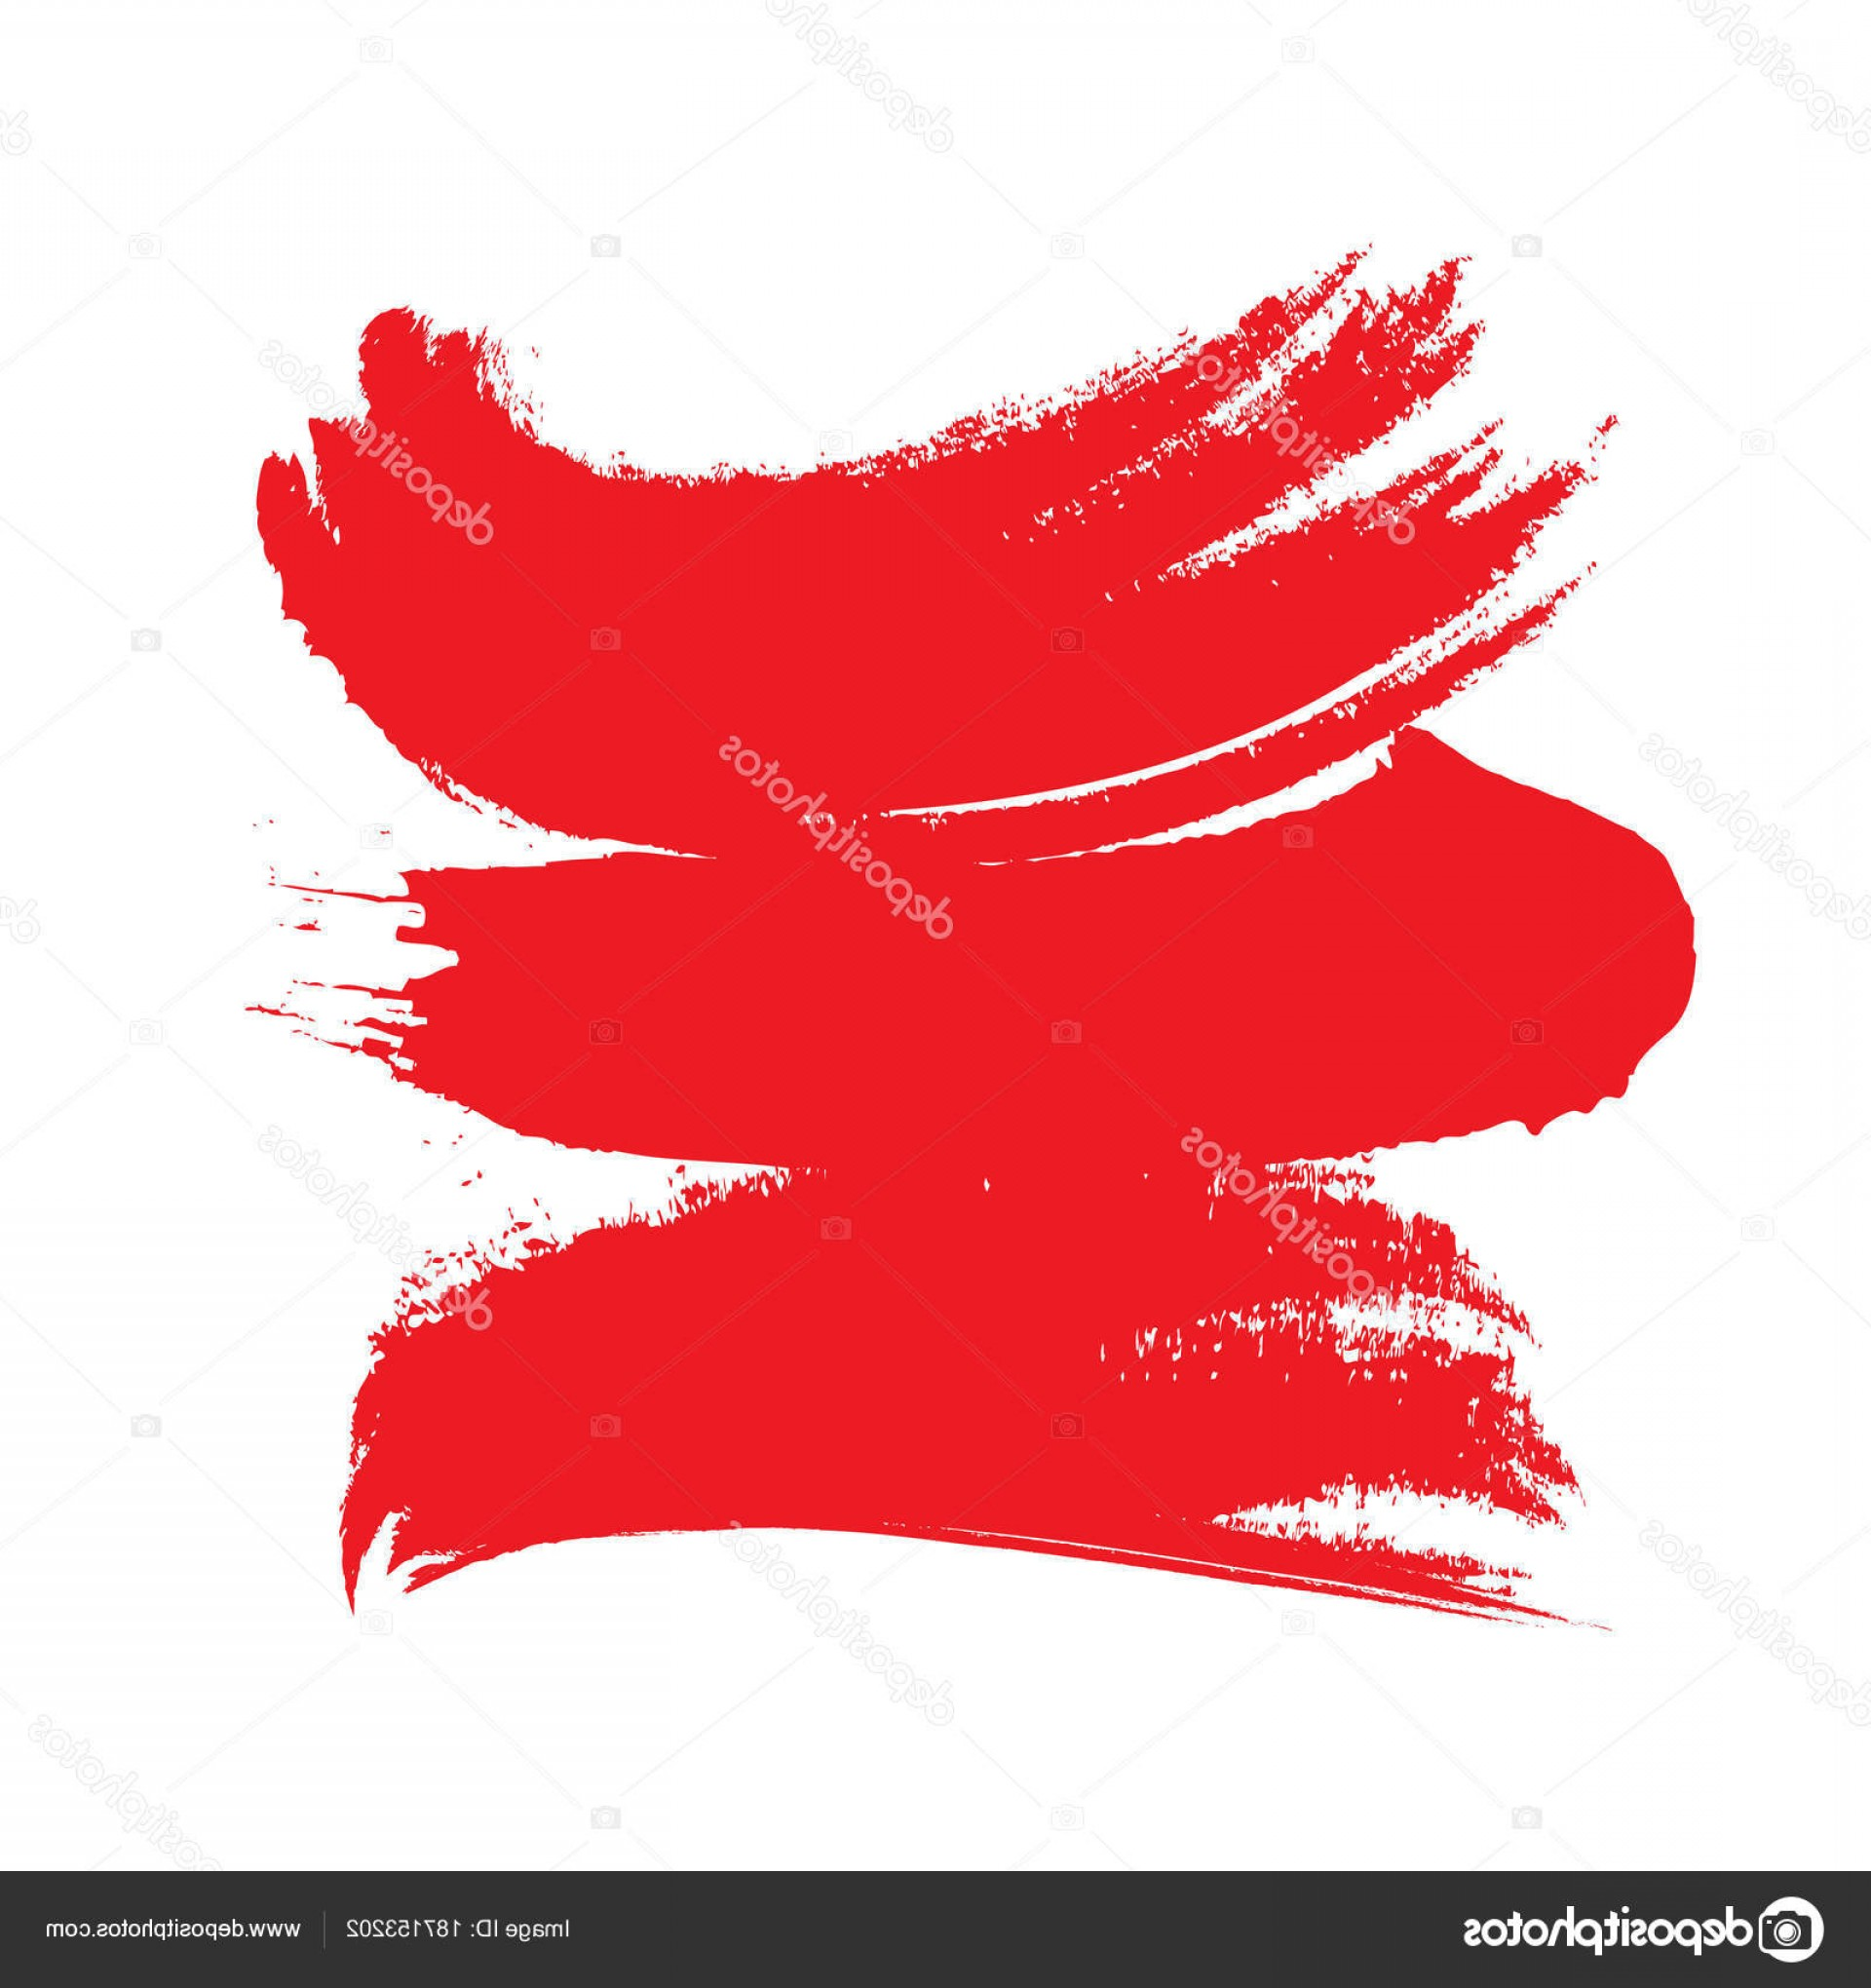 Distressed Red Background Vector: Stock Illustration Vector Illustration Red Curved Paint